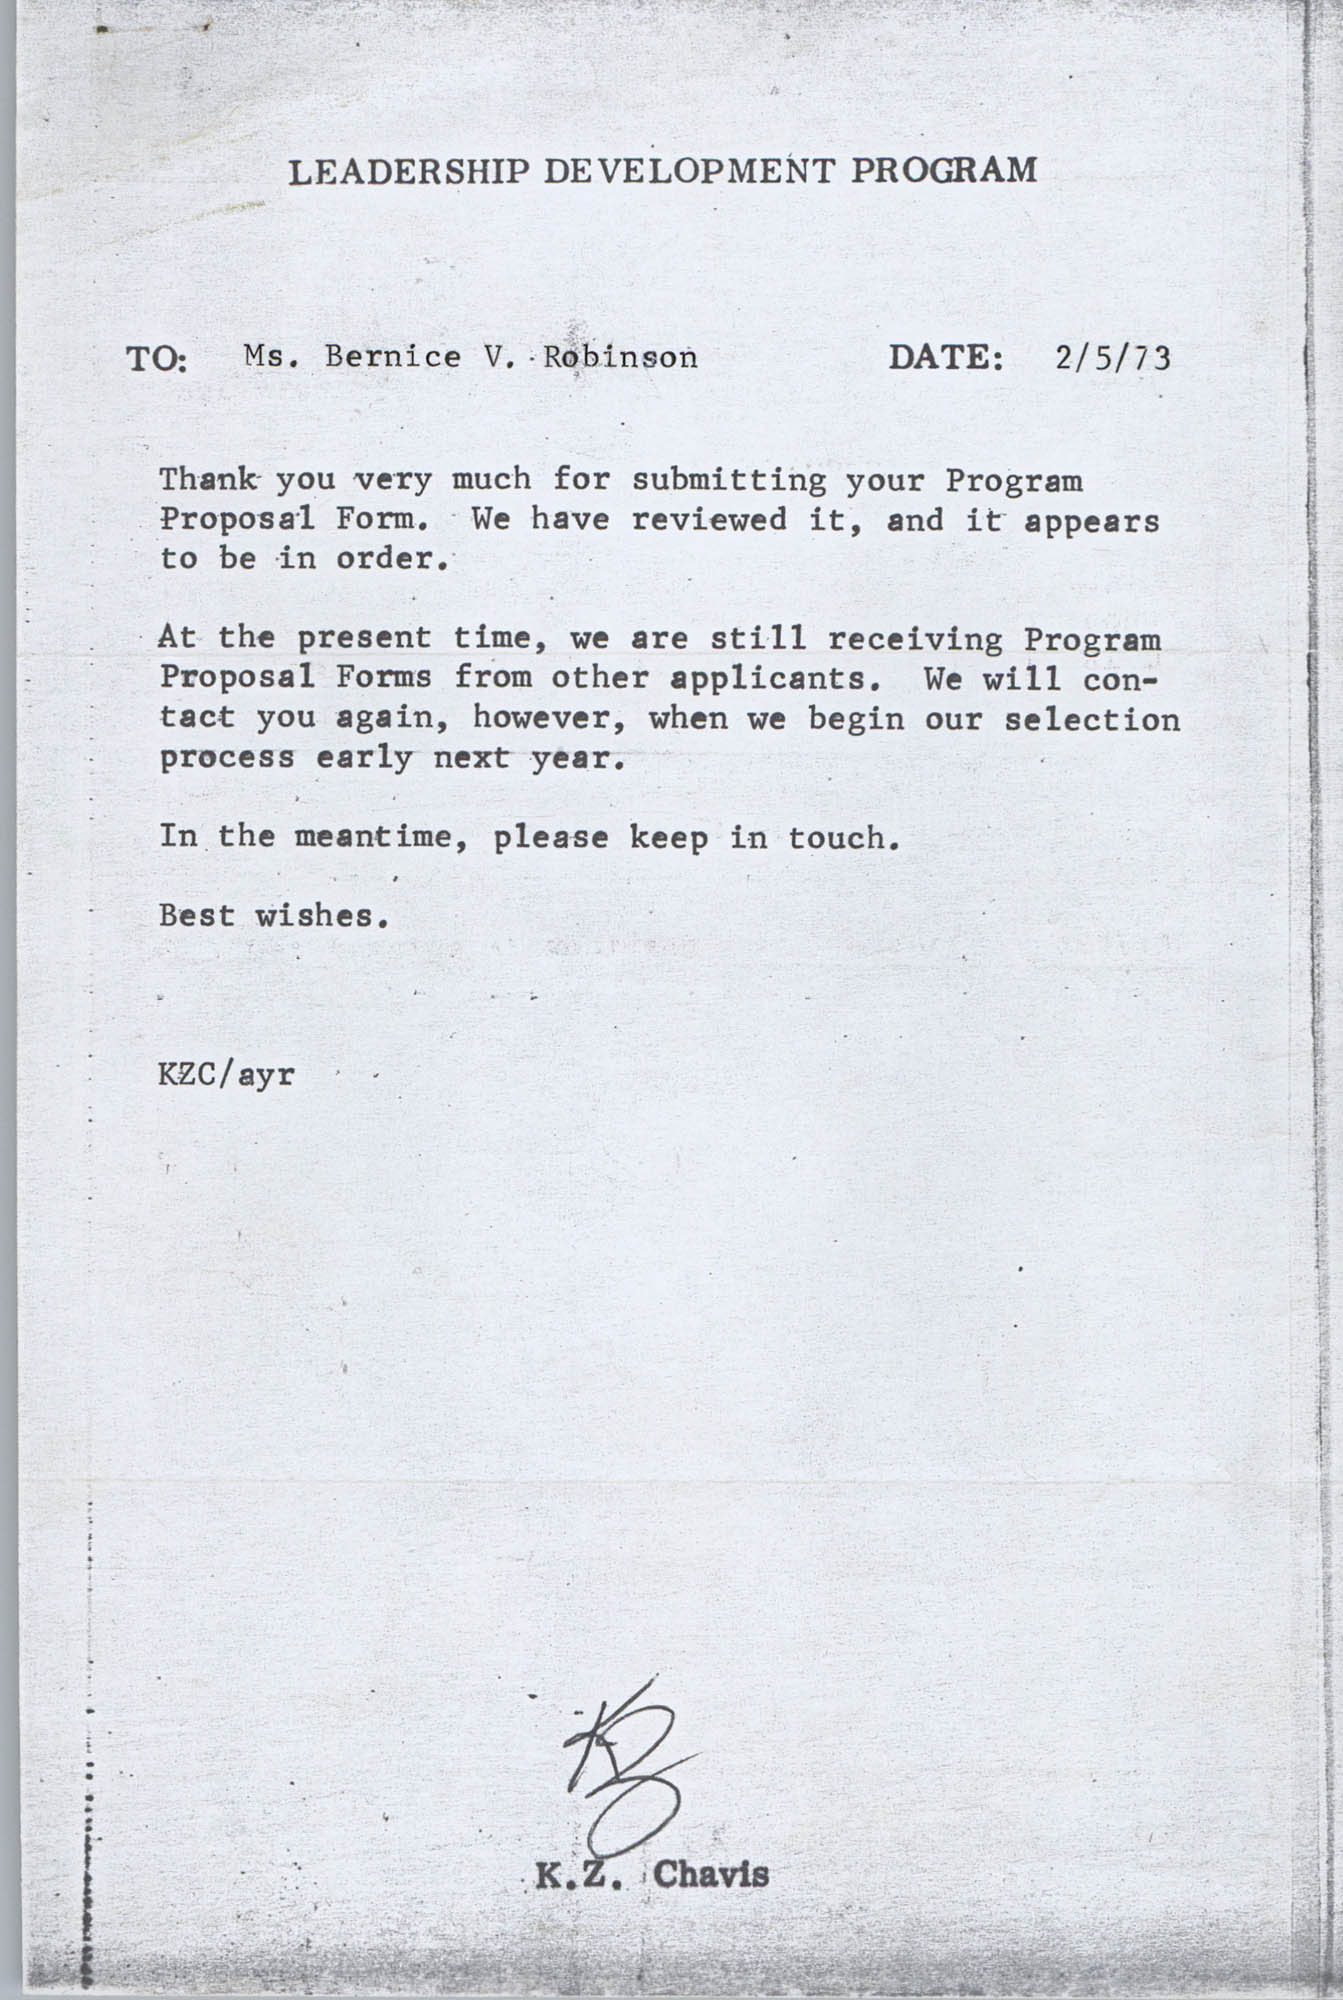 Letter from K. Z. Chavis to Bernice V. Robinson, February 5, 1973